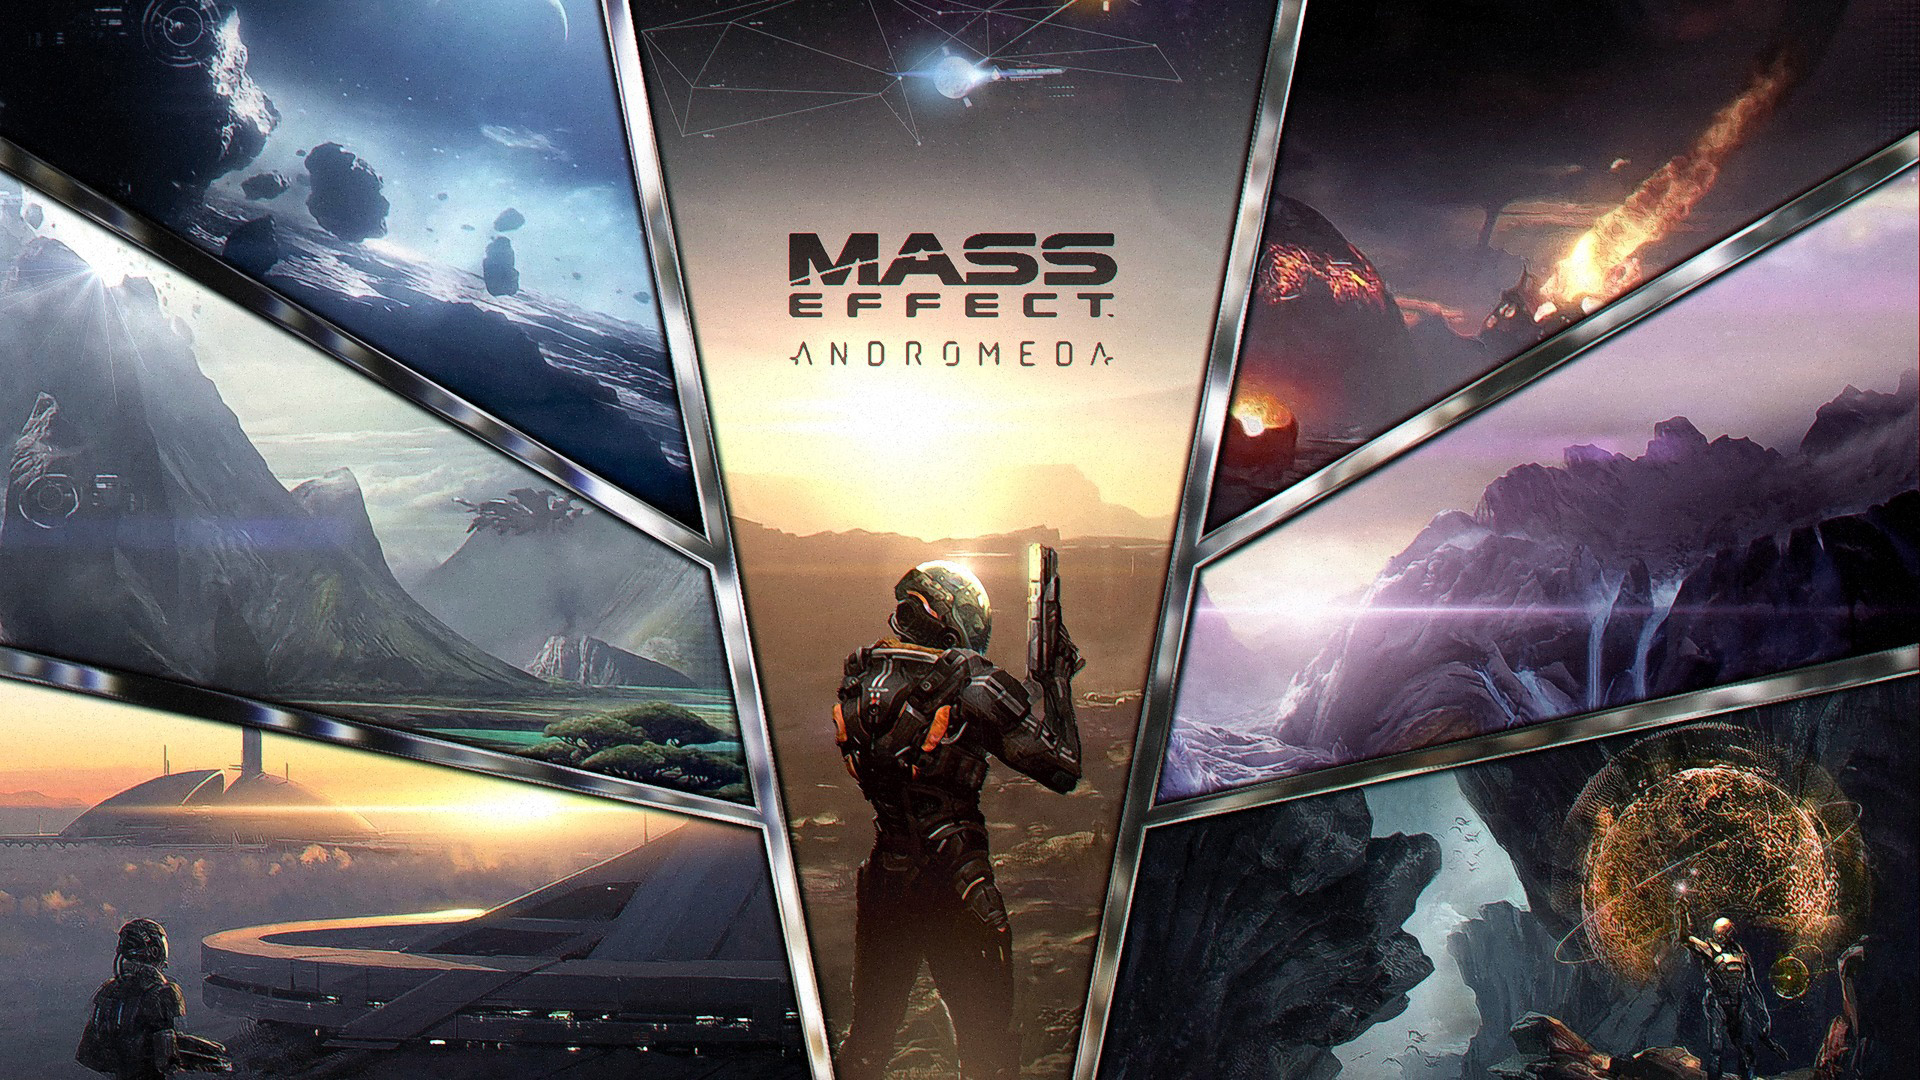 Free Mass Effect: Andromeda Wallpaper in 1920x1080